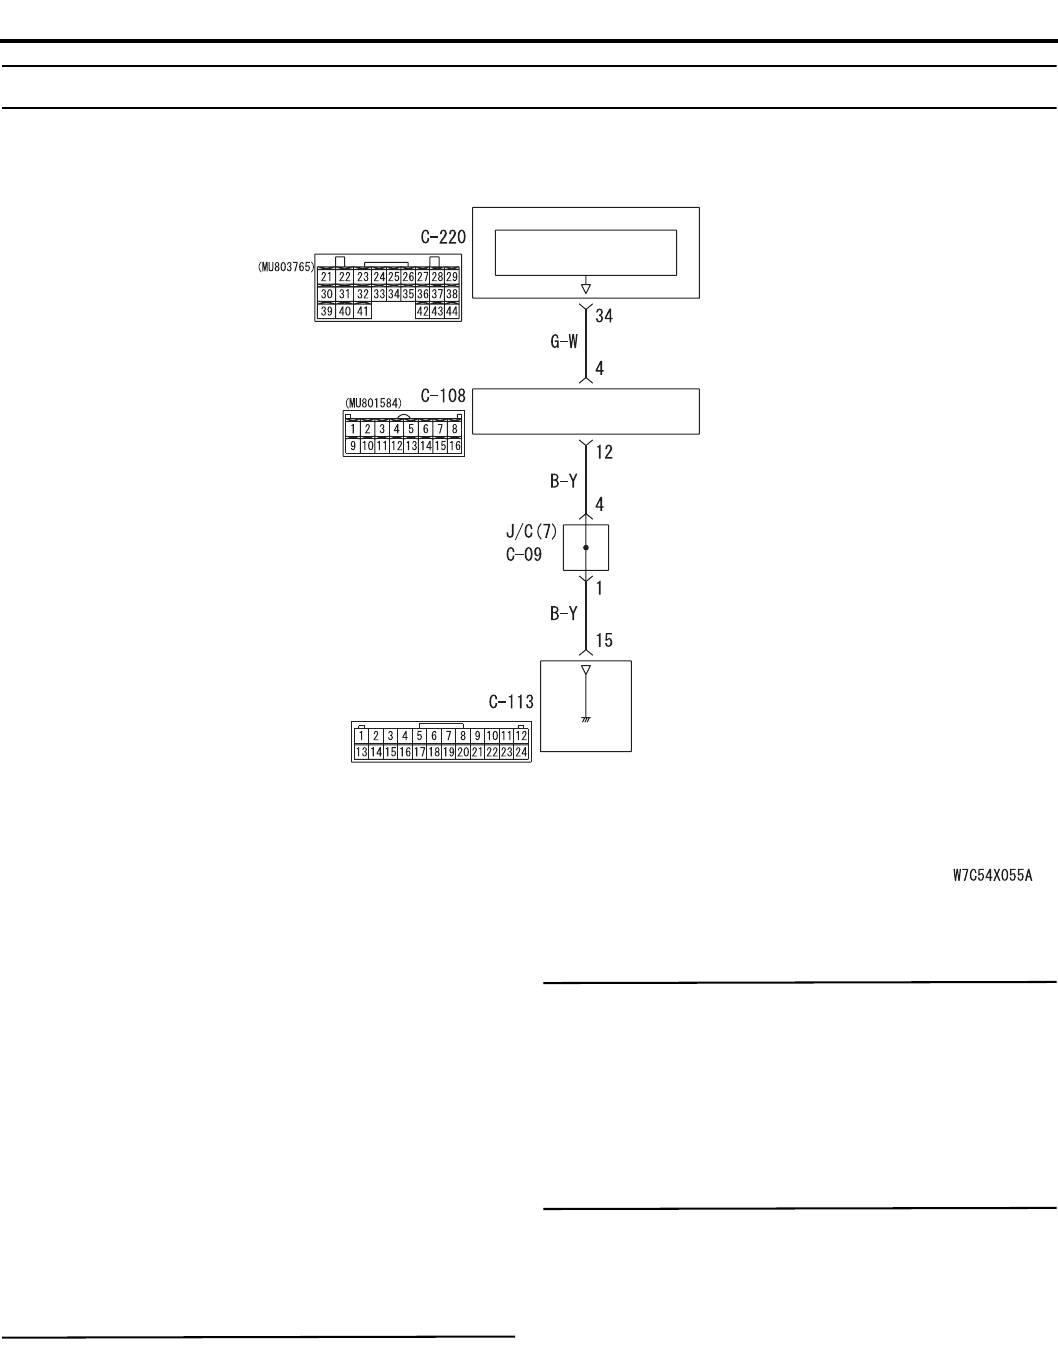 Mitsubishi L200 Central Locking Wiring Diagram | Wiring Library